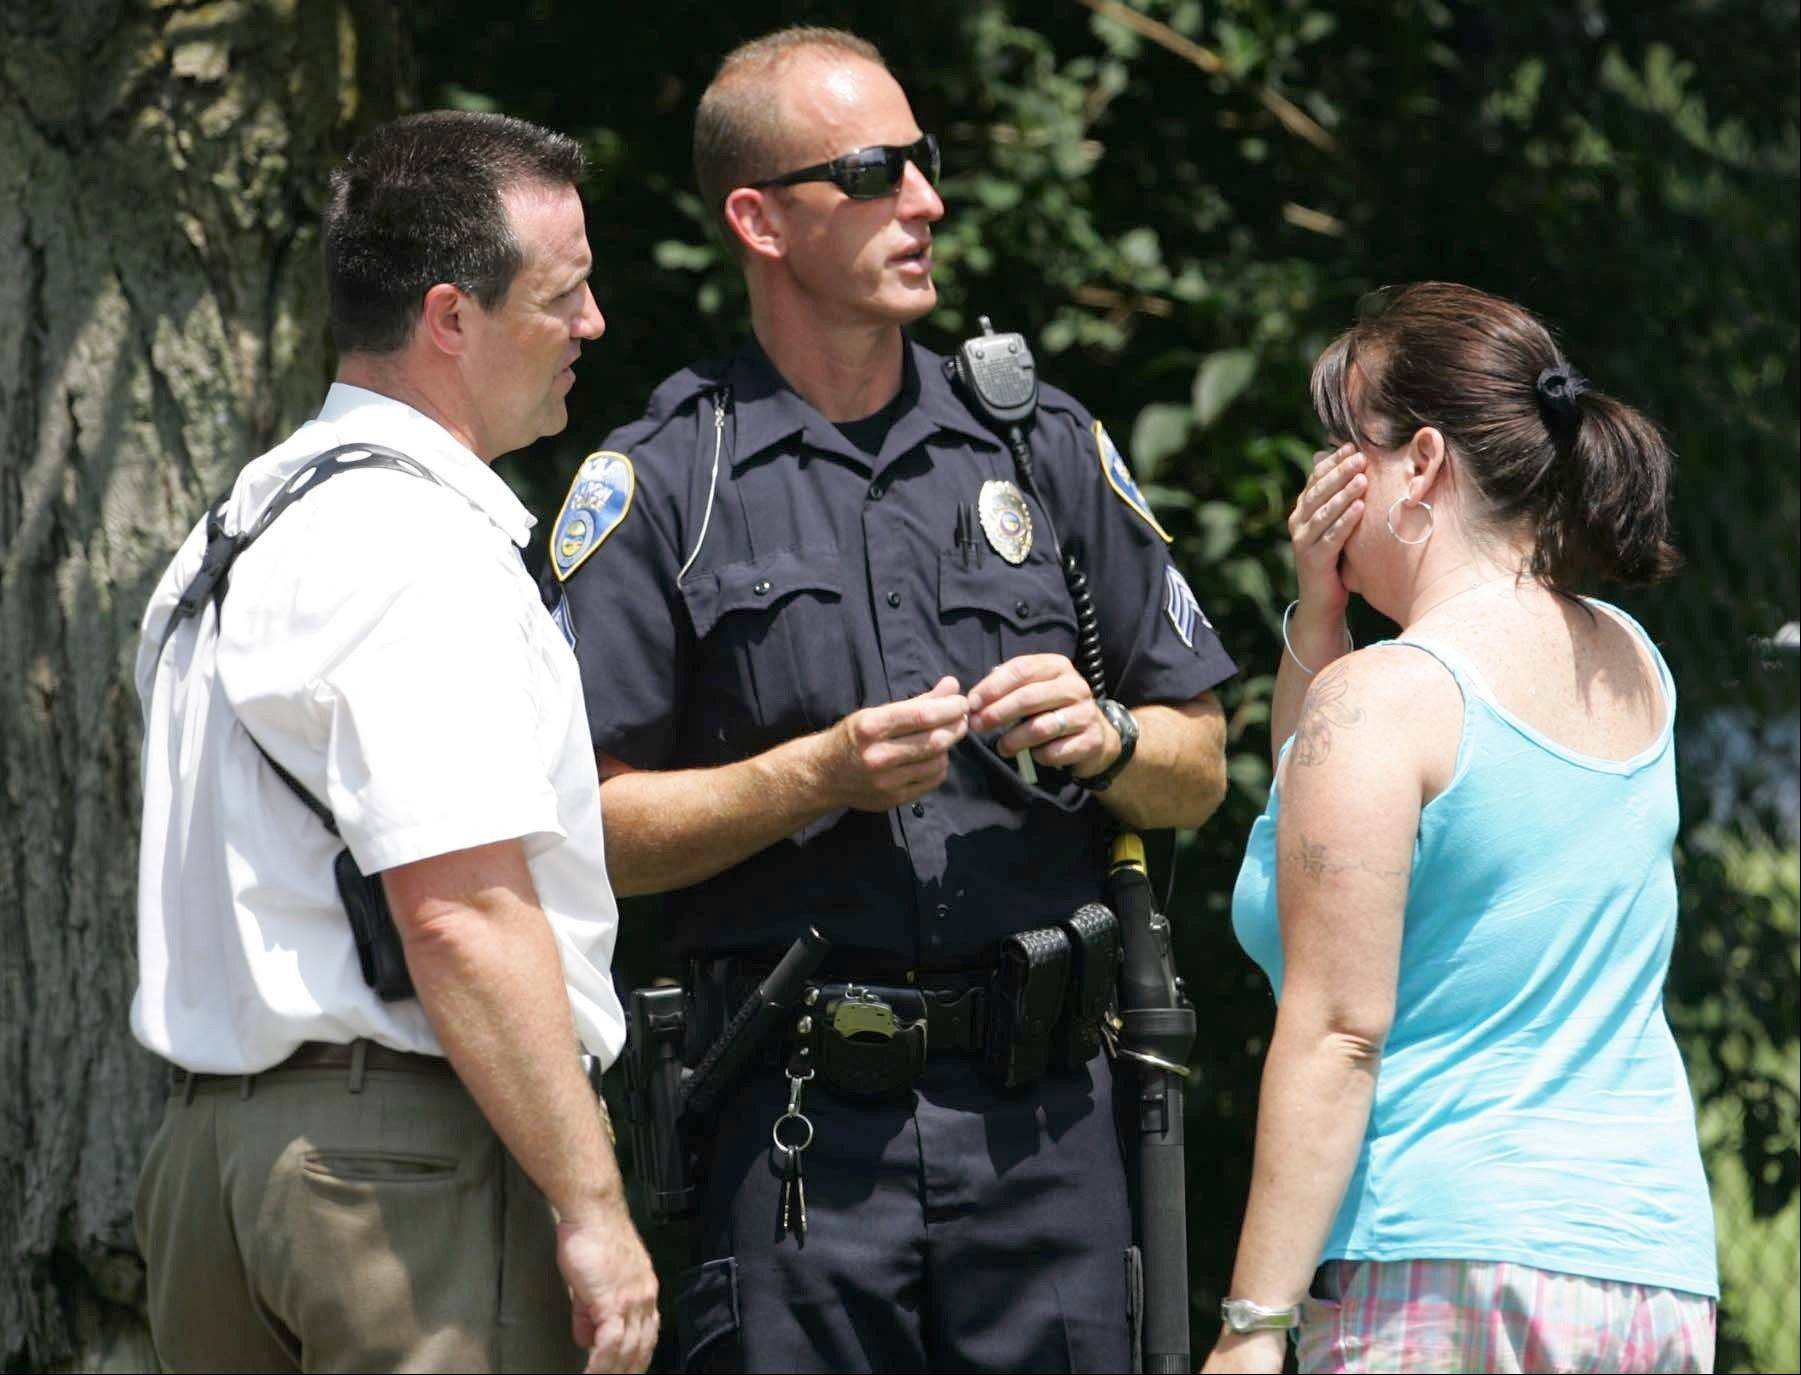 Members of the Akron Police Department talk to an unidentified woman who claimed to be a relative at the scene of a multiple fatal shooting Sunday in Copley Township, Ohio.